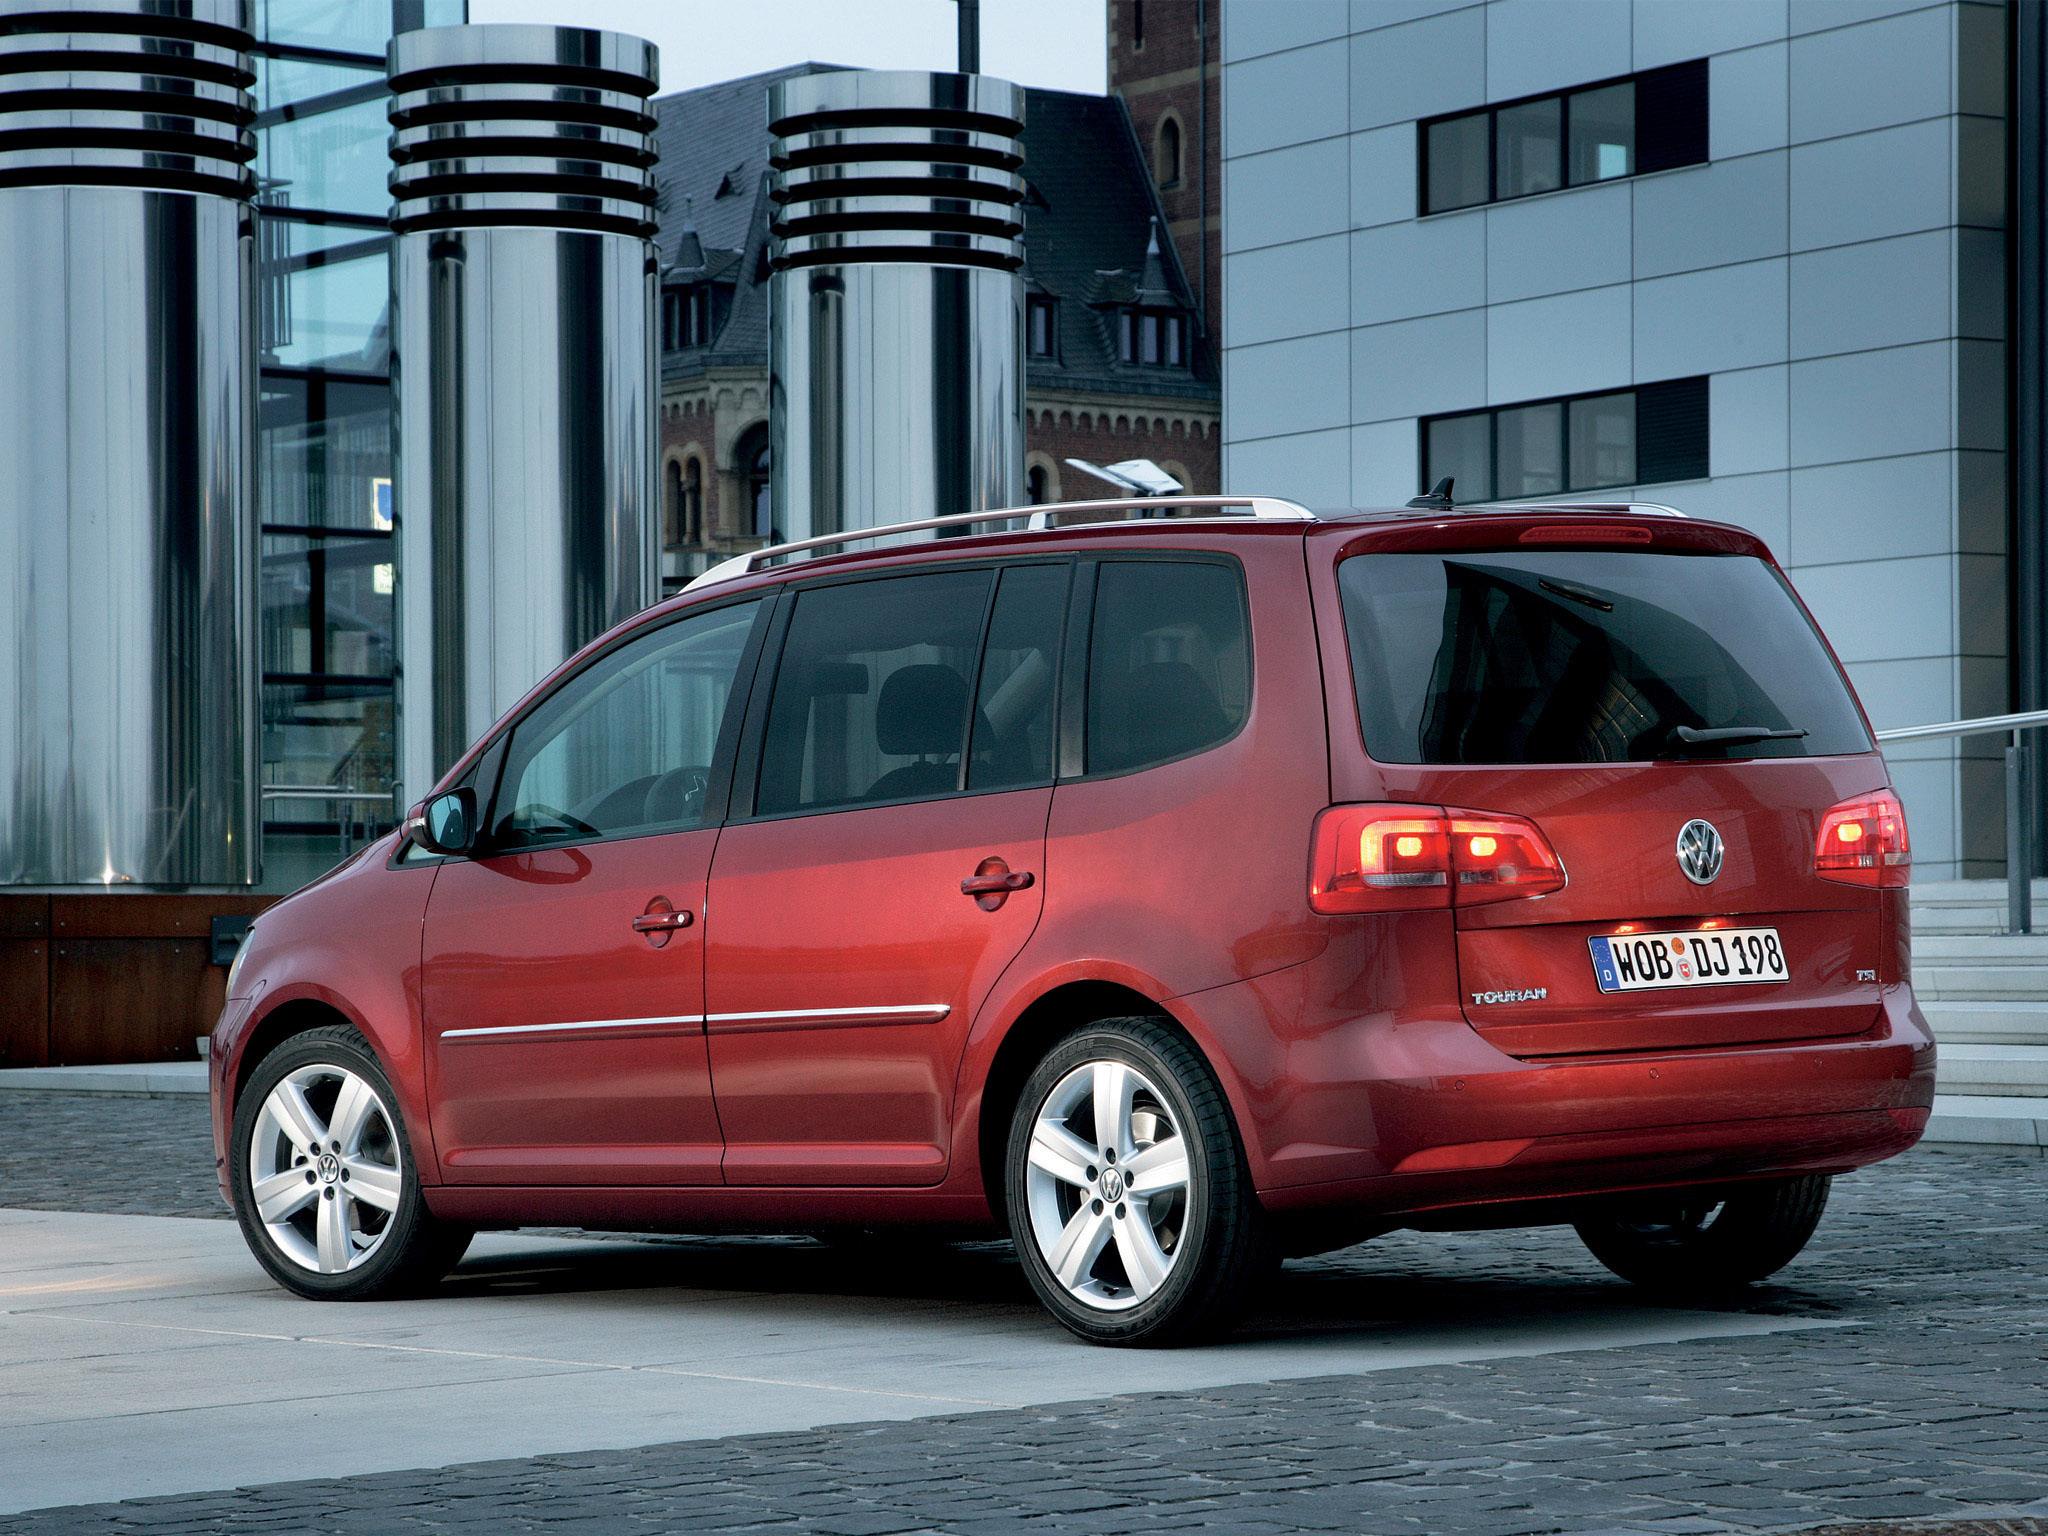 volkswagen touran 2010 volkswagen touran 2010 photo 08 car in pictures car photo gallery. Black Bedroom Furniture Sets. Home Design Ideas